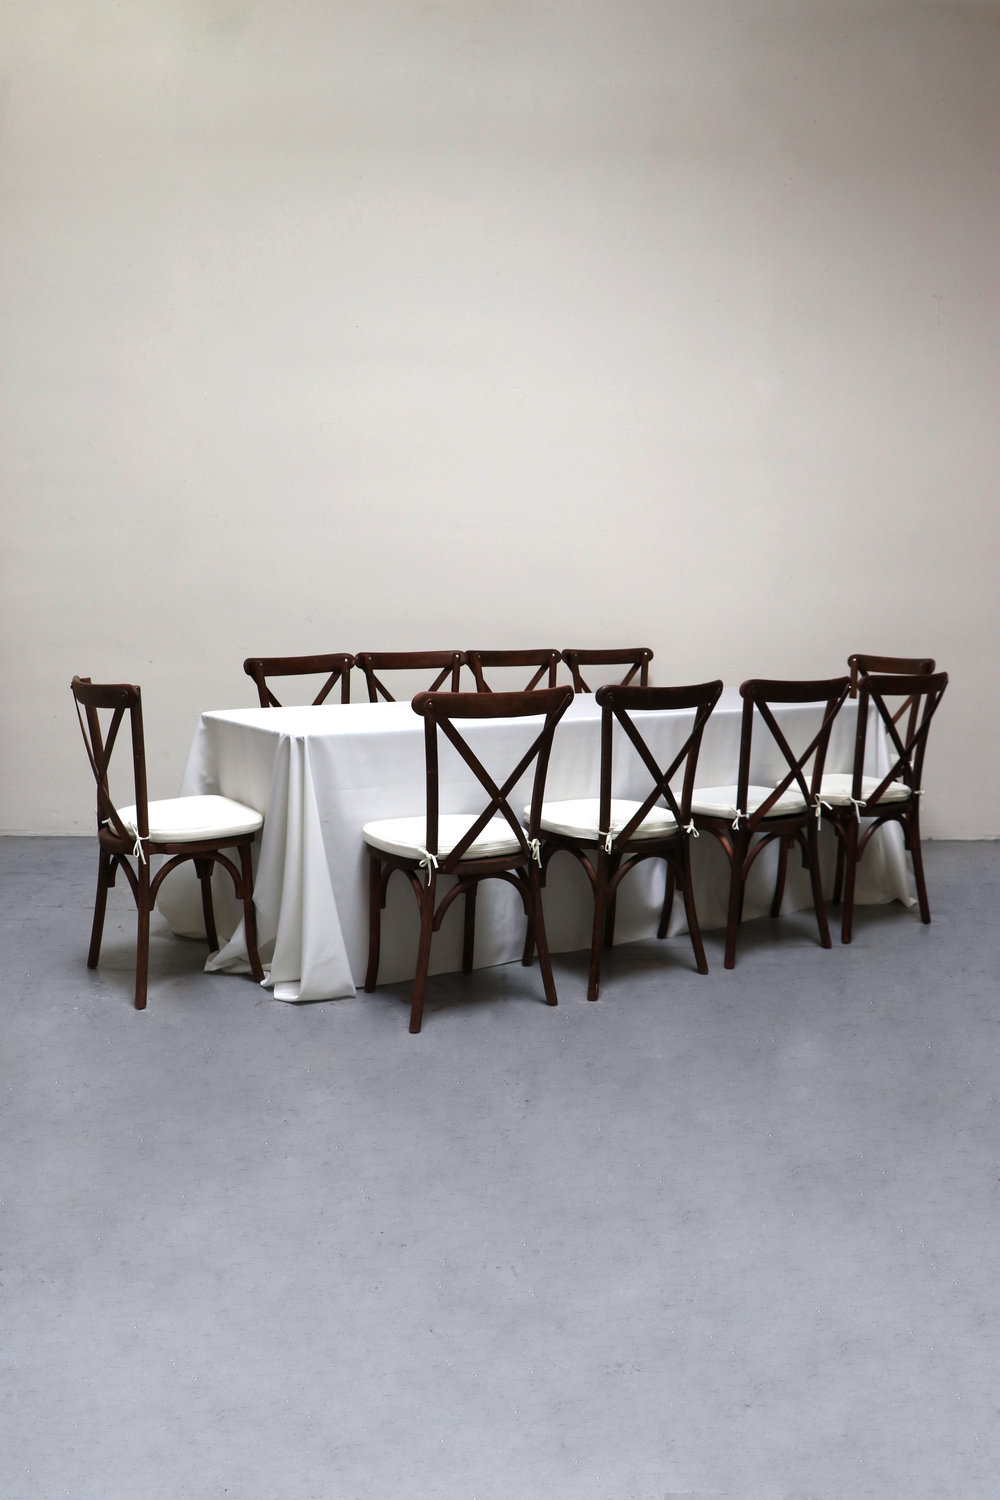 1 Banquet Table with 10 Cross-Back Chairs $100